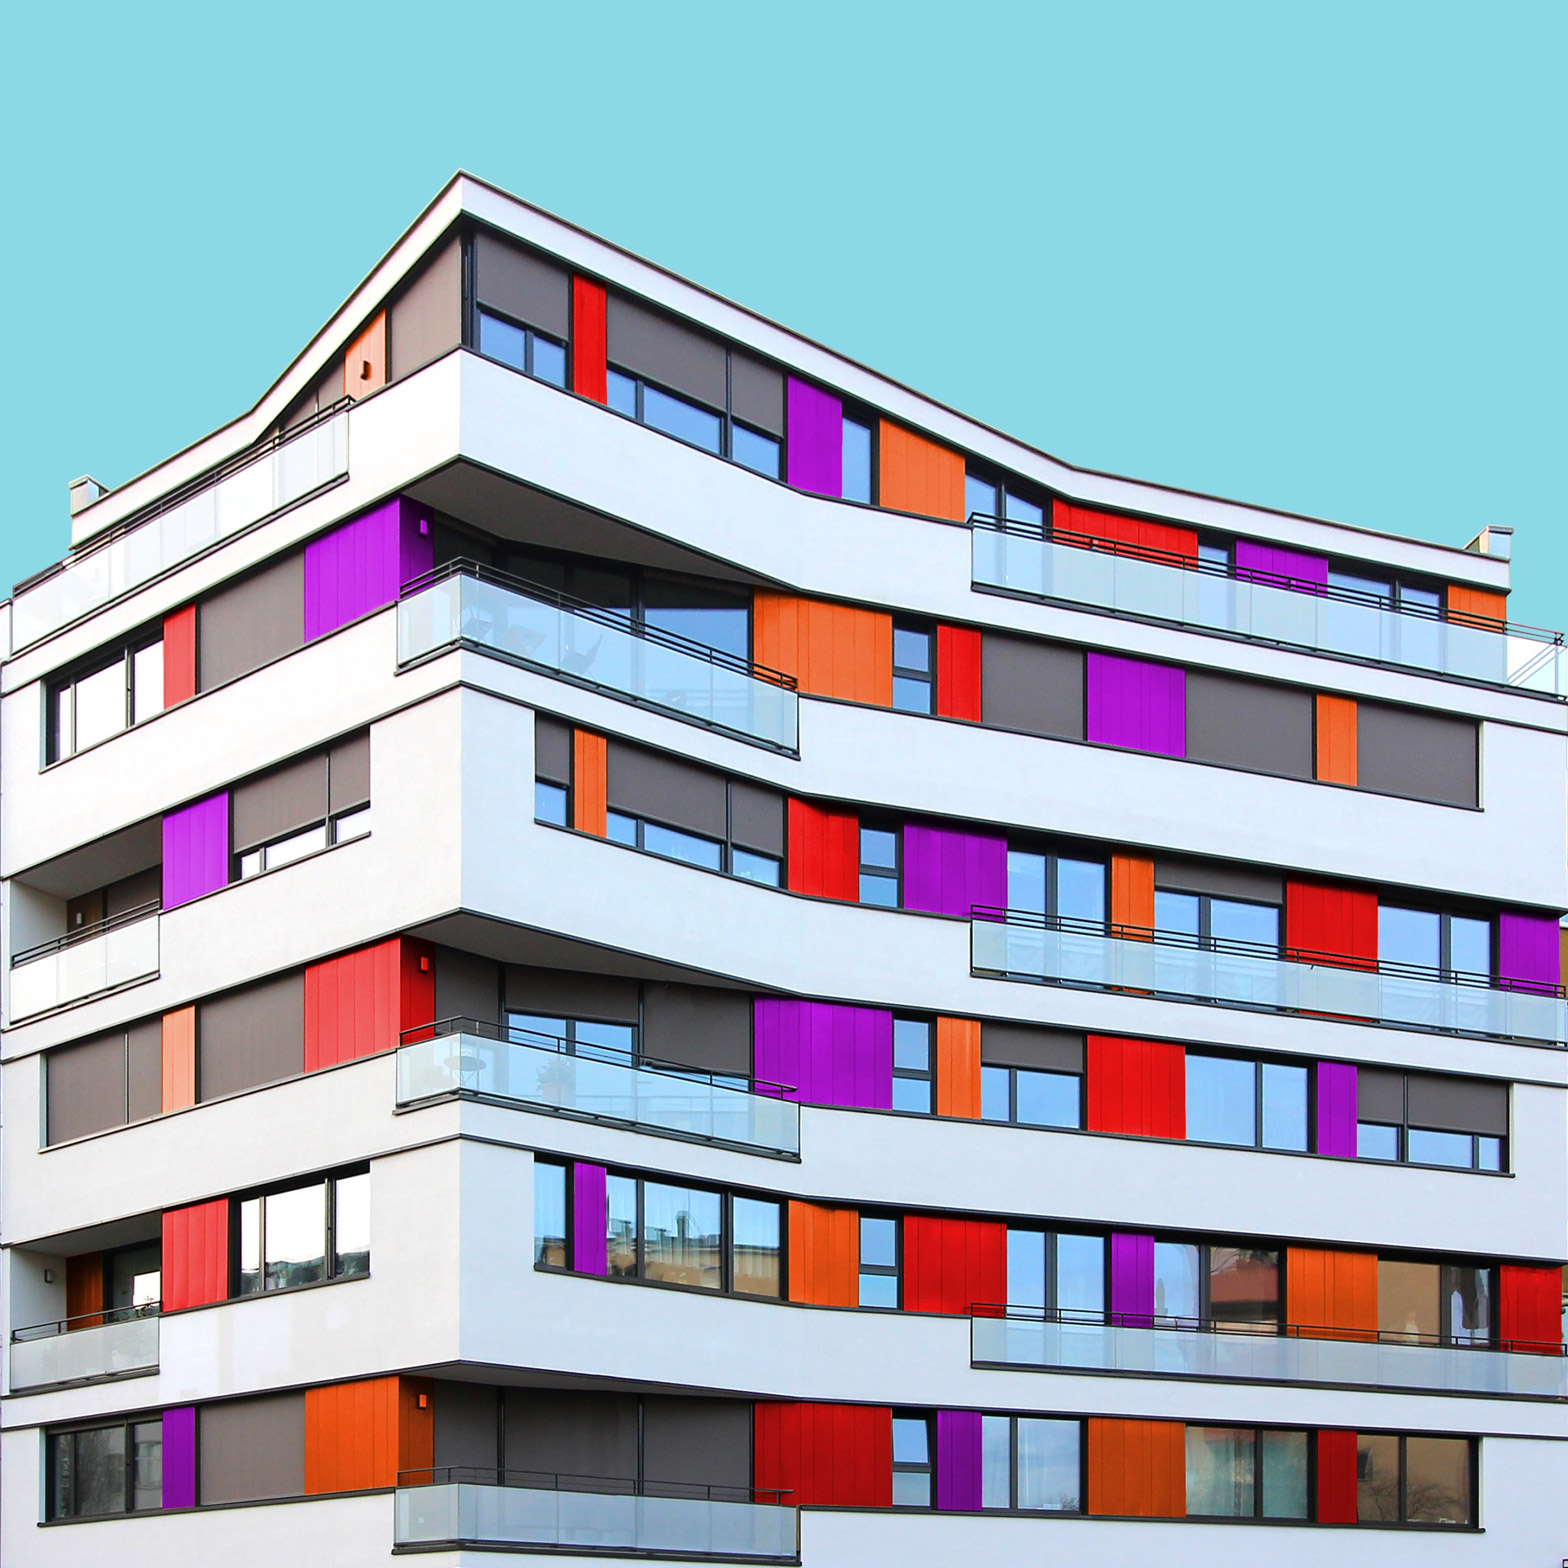 paul eis gives colourful makeover to german city architecture colourful berlin photography architecture essay by paul eis from